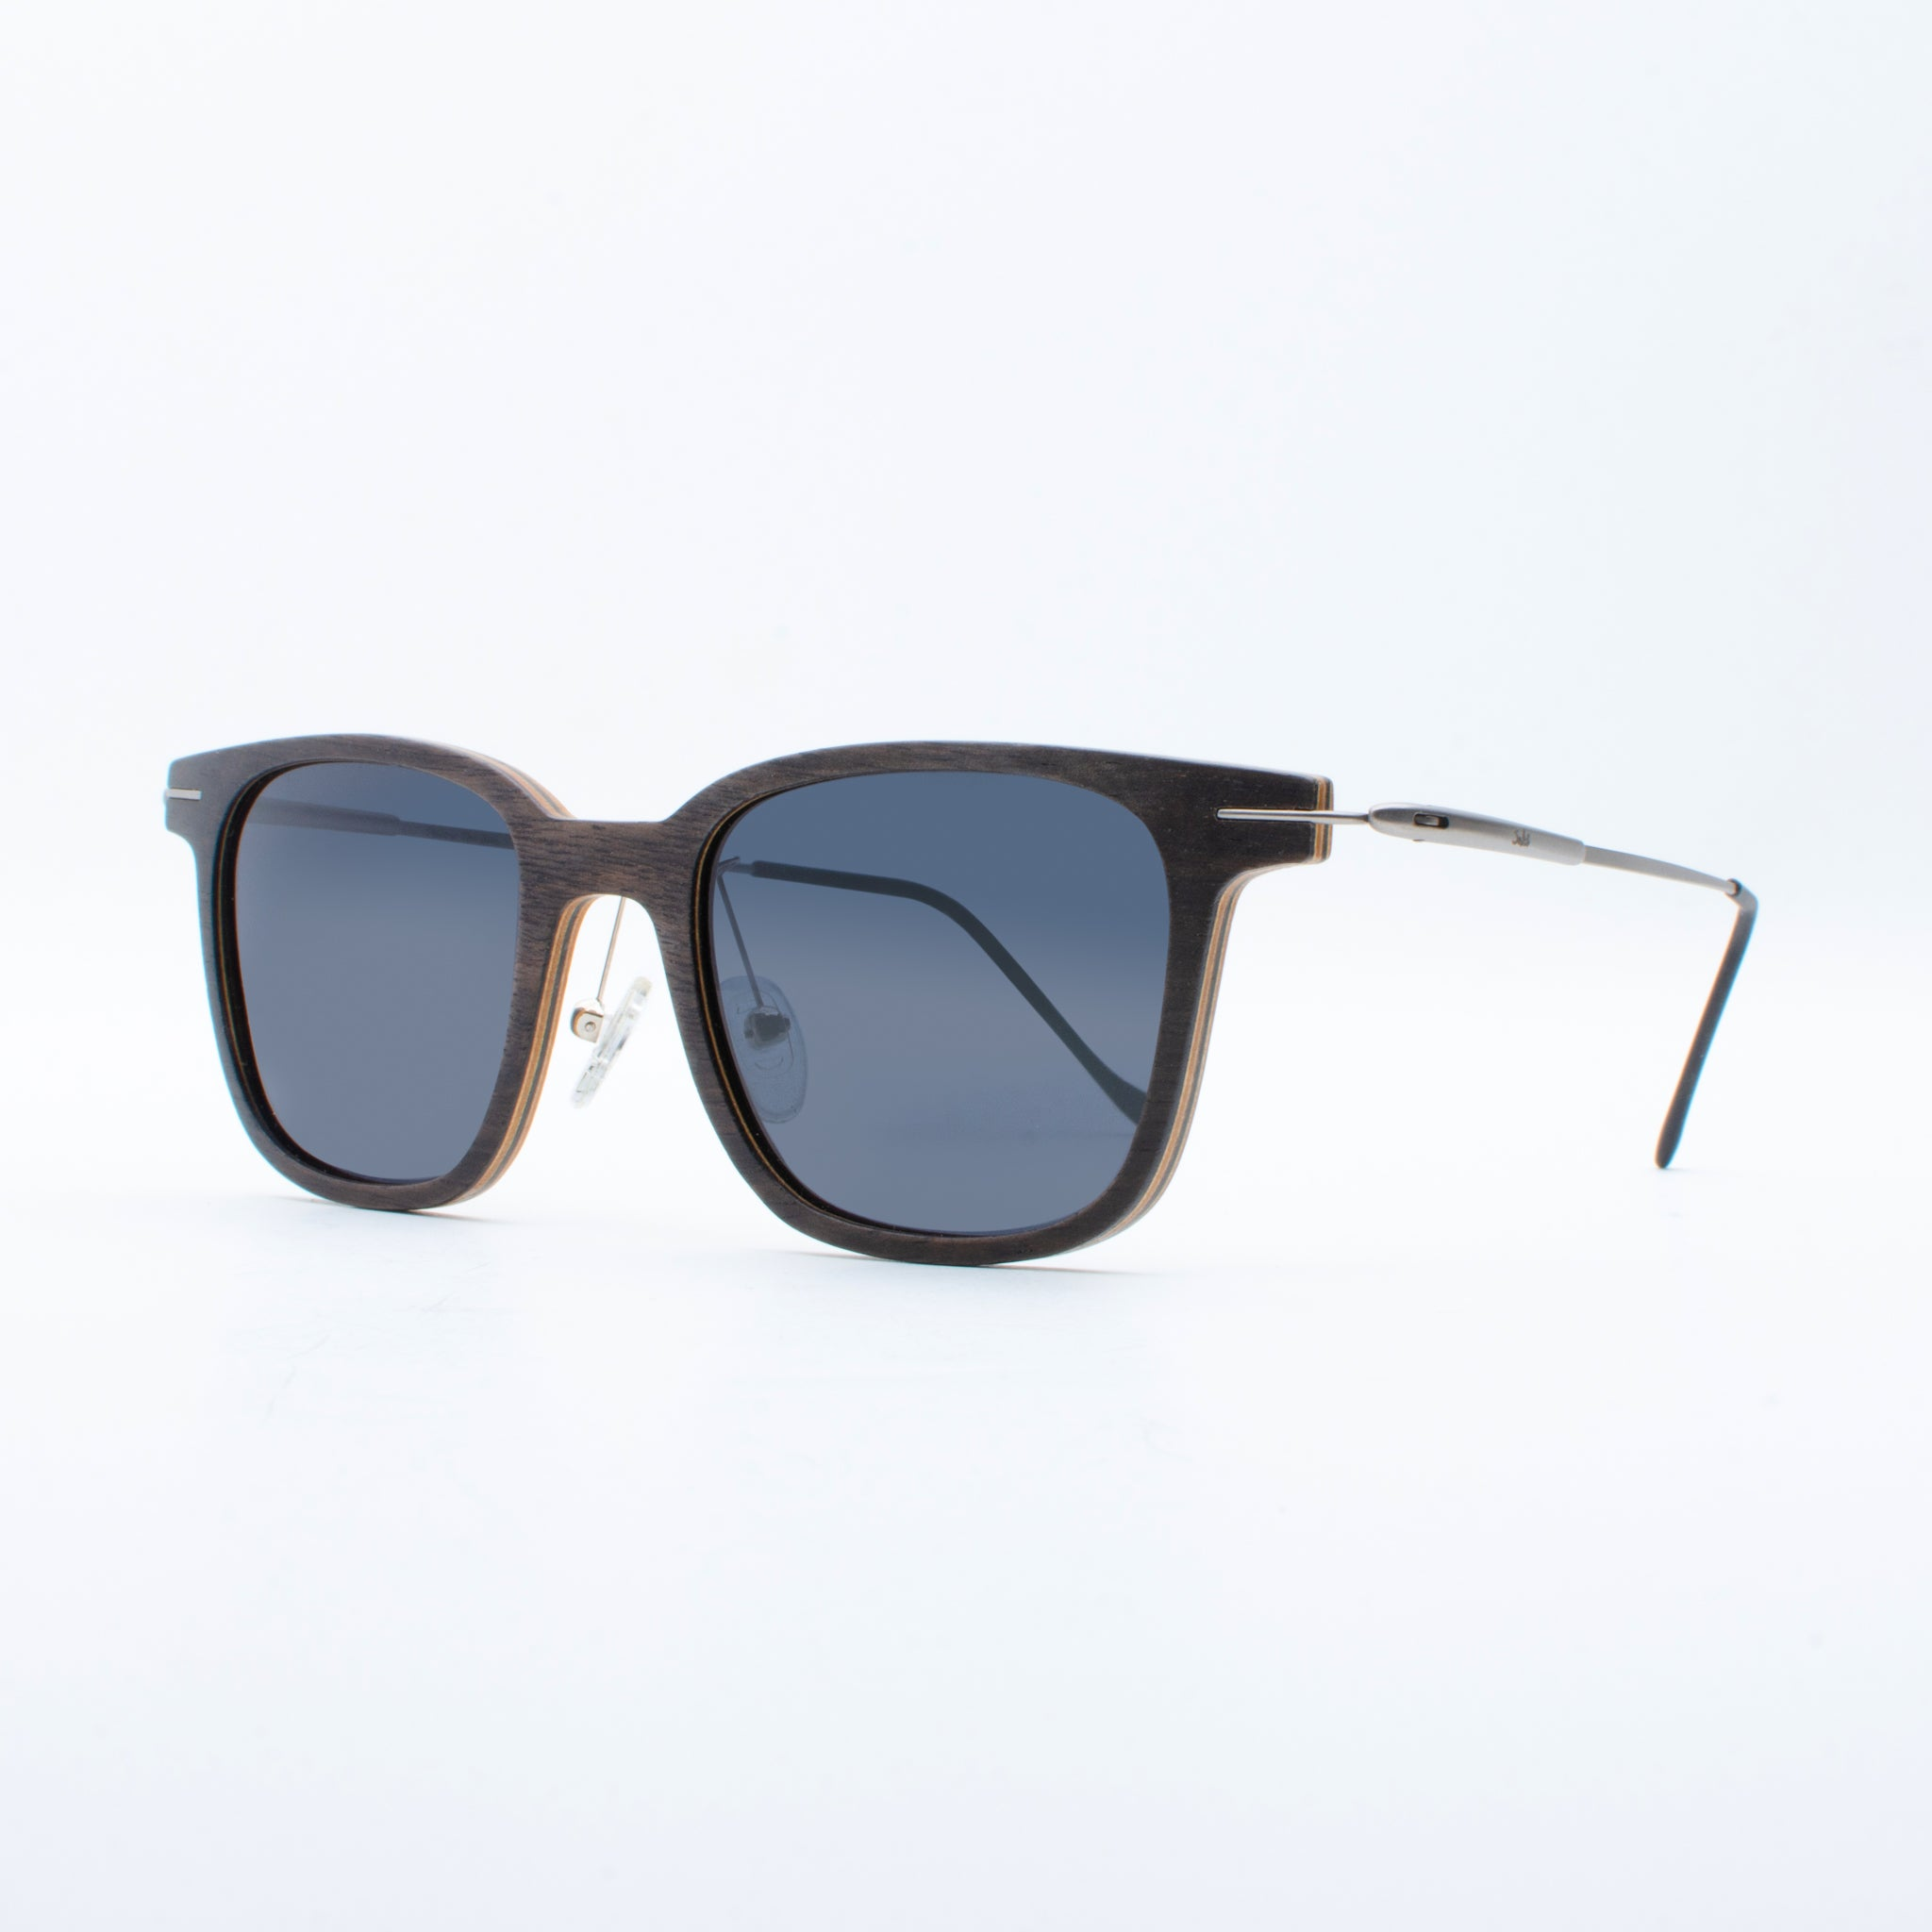 WOODEN SUNGLASSES KELIMUTU EBONY SUKI